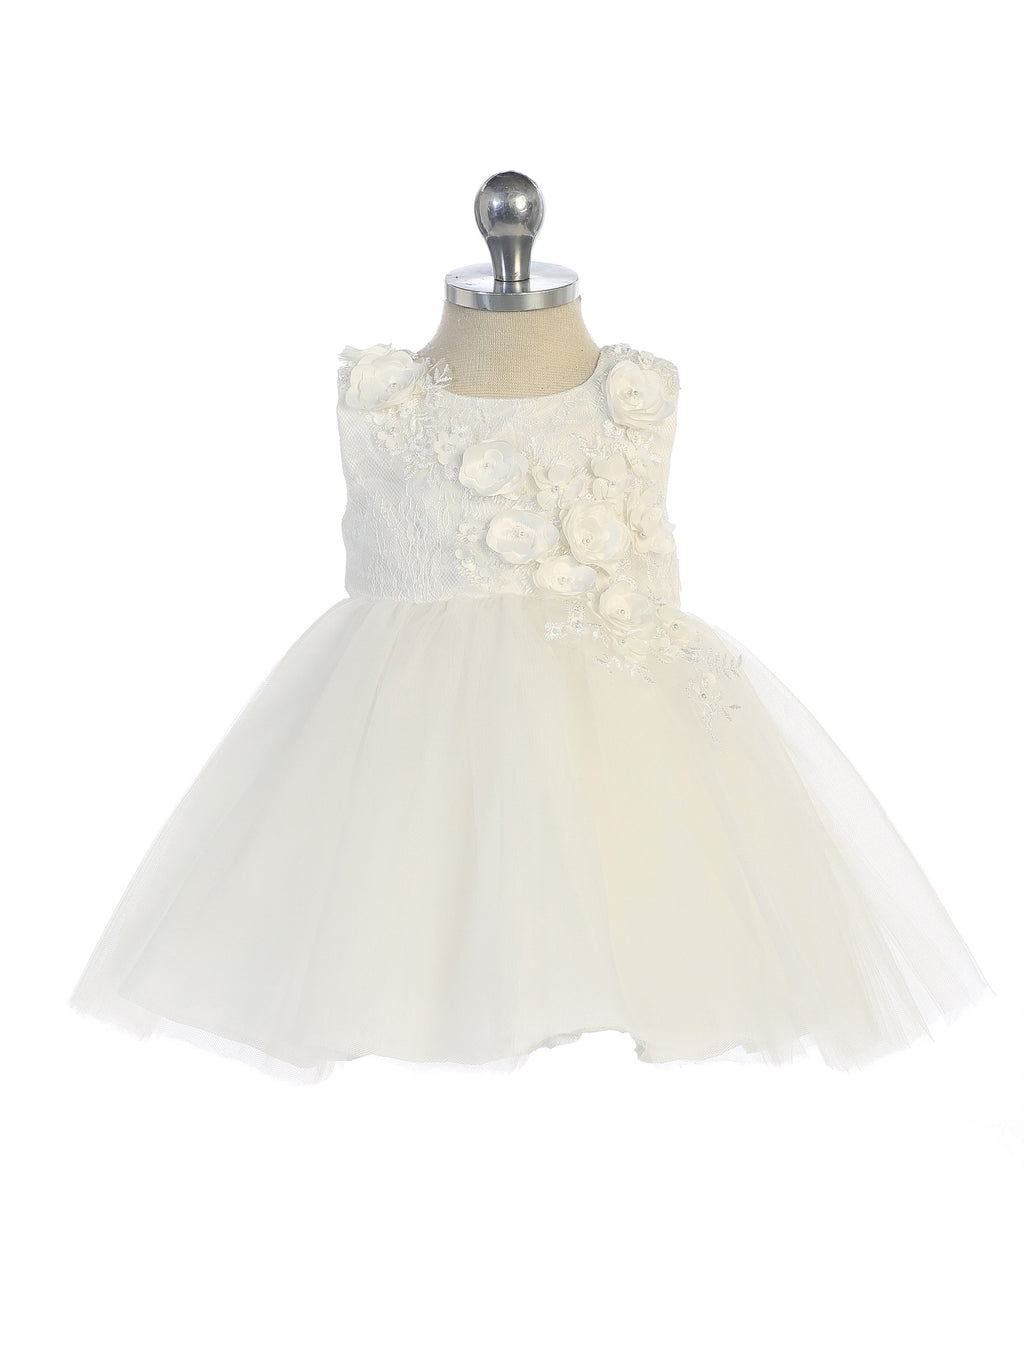 Ivory Sleeveless Lace Bodice with Mesh Skirt and 3D Flowers